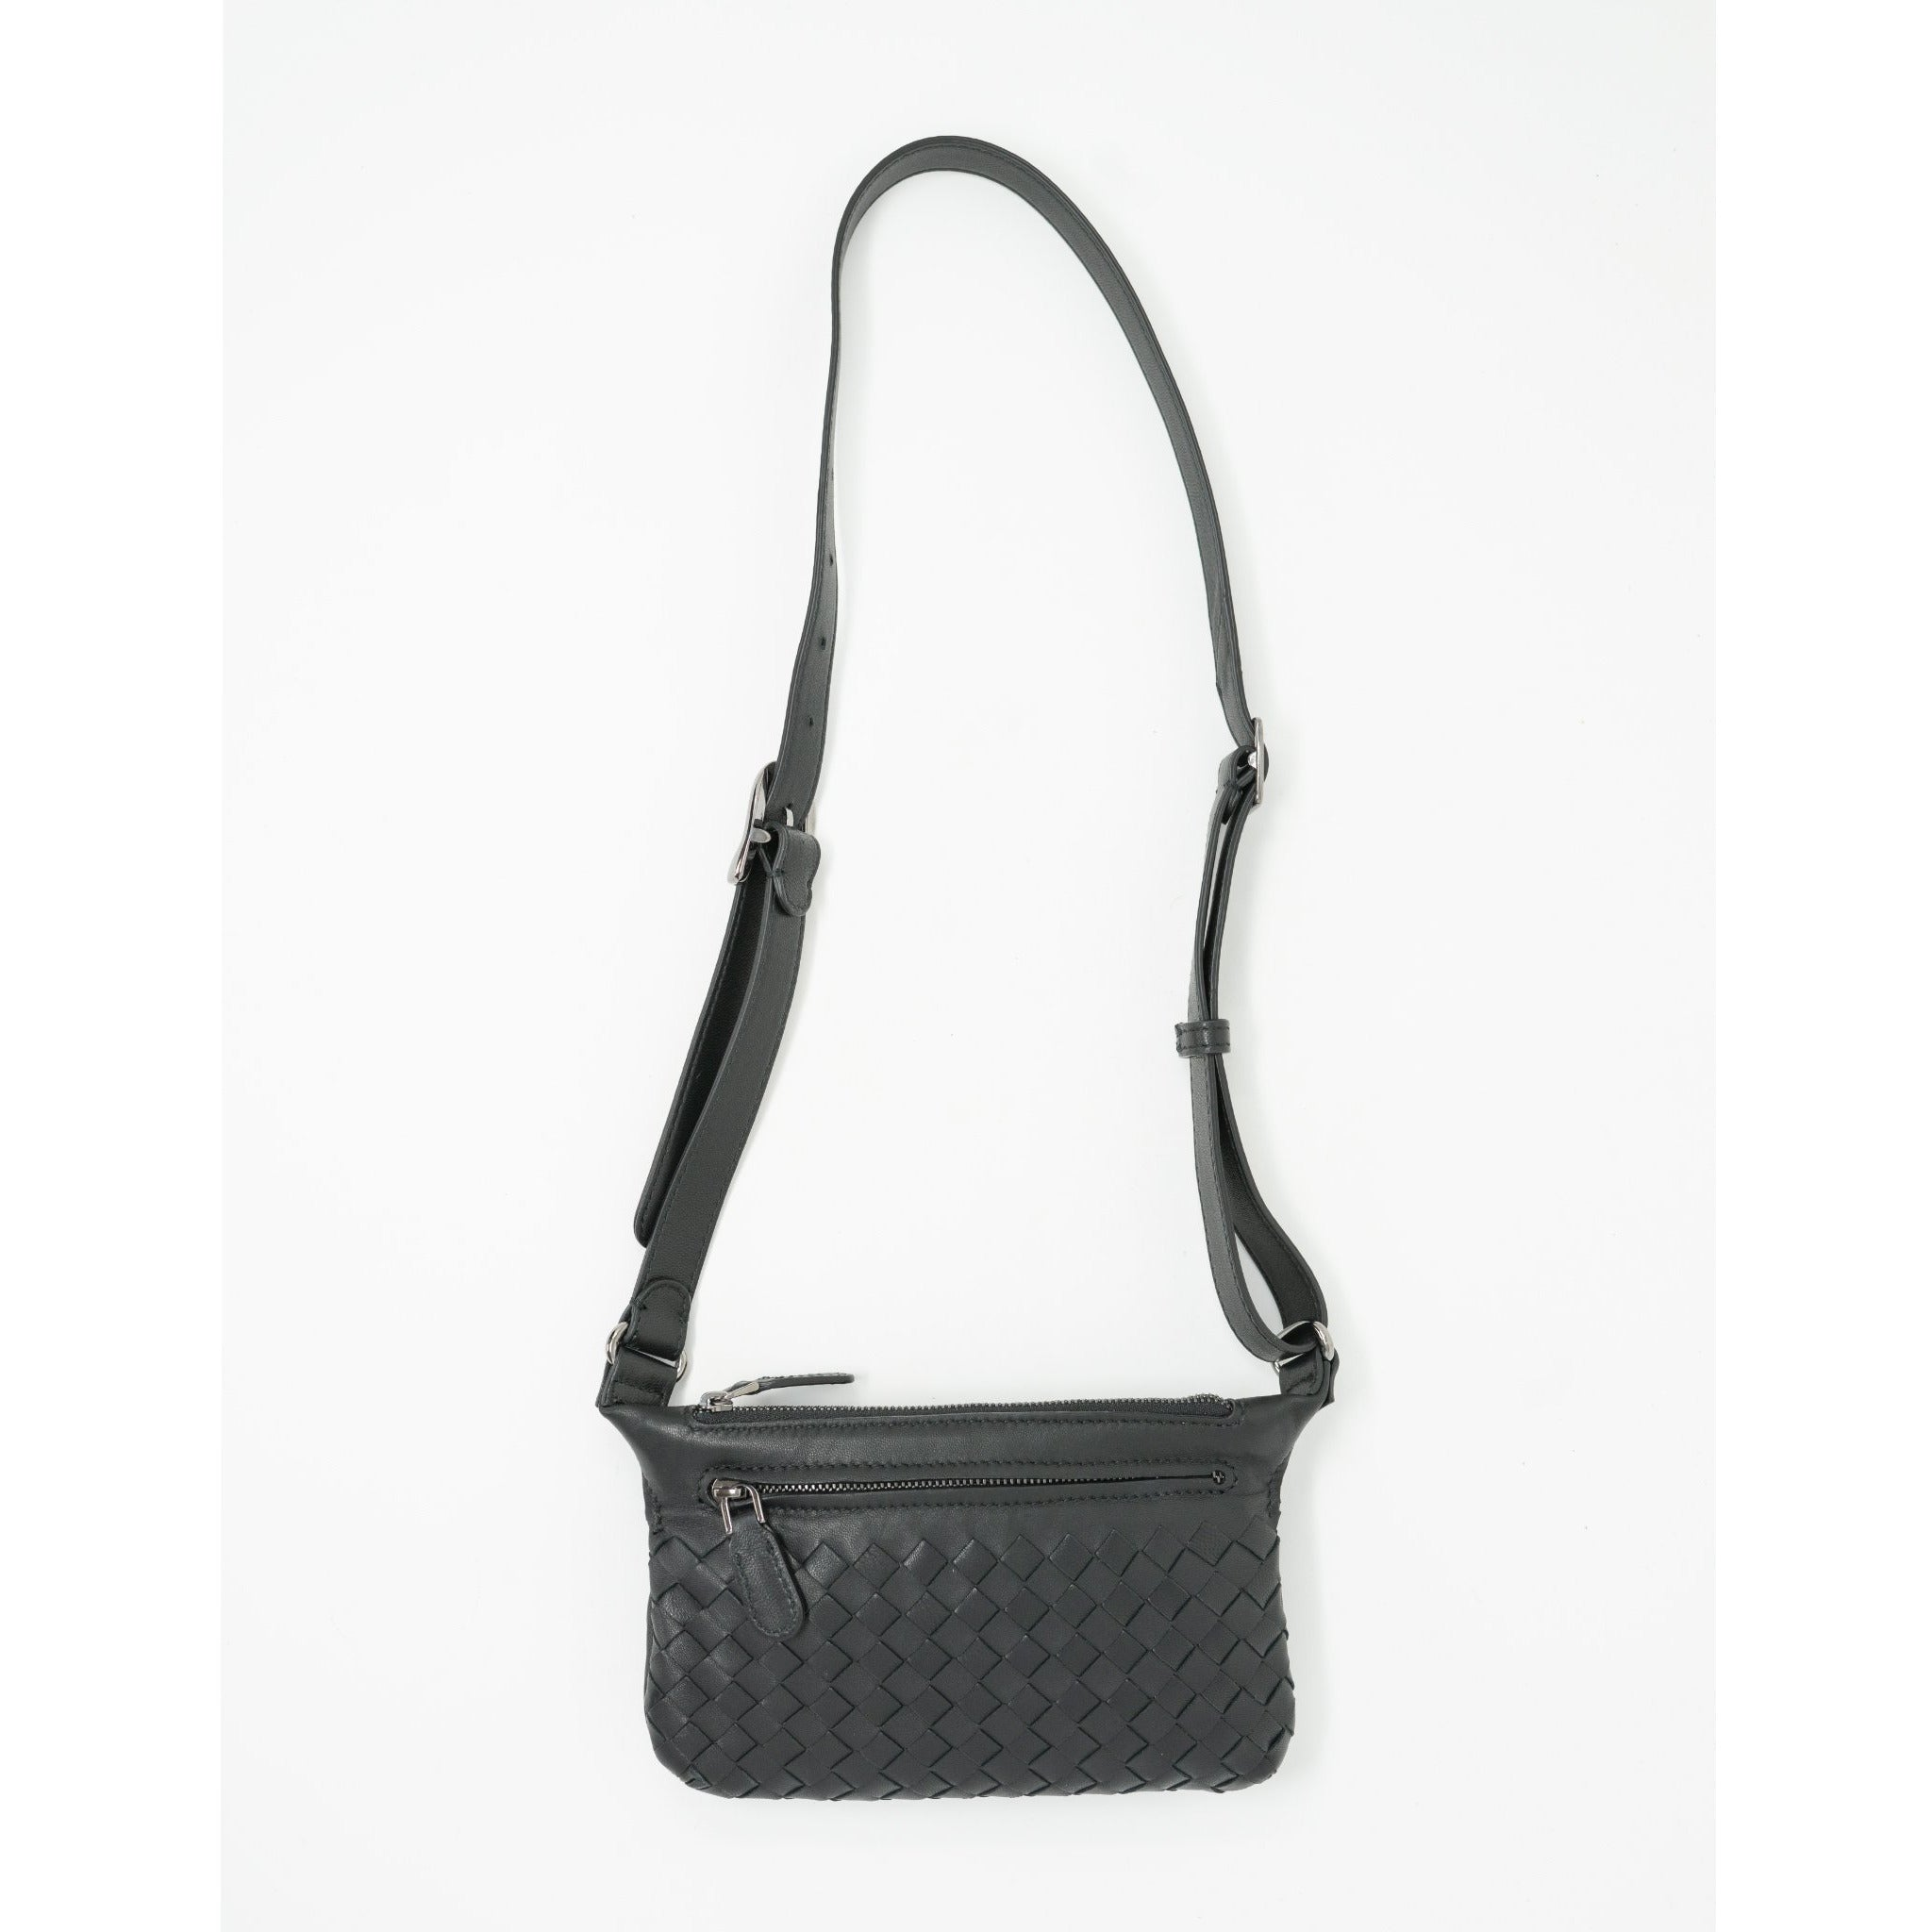 JT337 Women Black Intrecciato Nappa Belt Bag - Jennifer Tattanelli